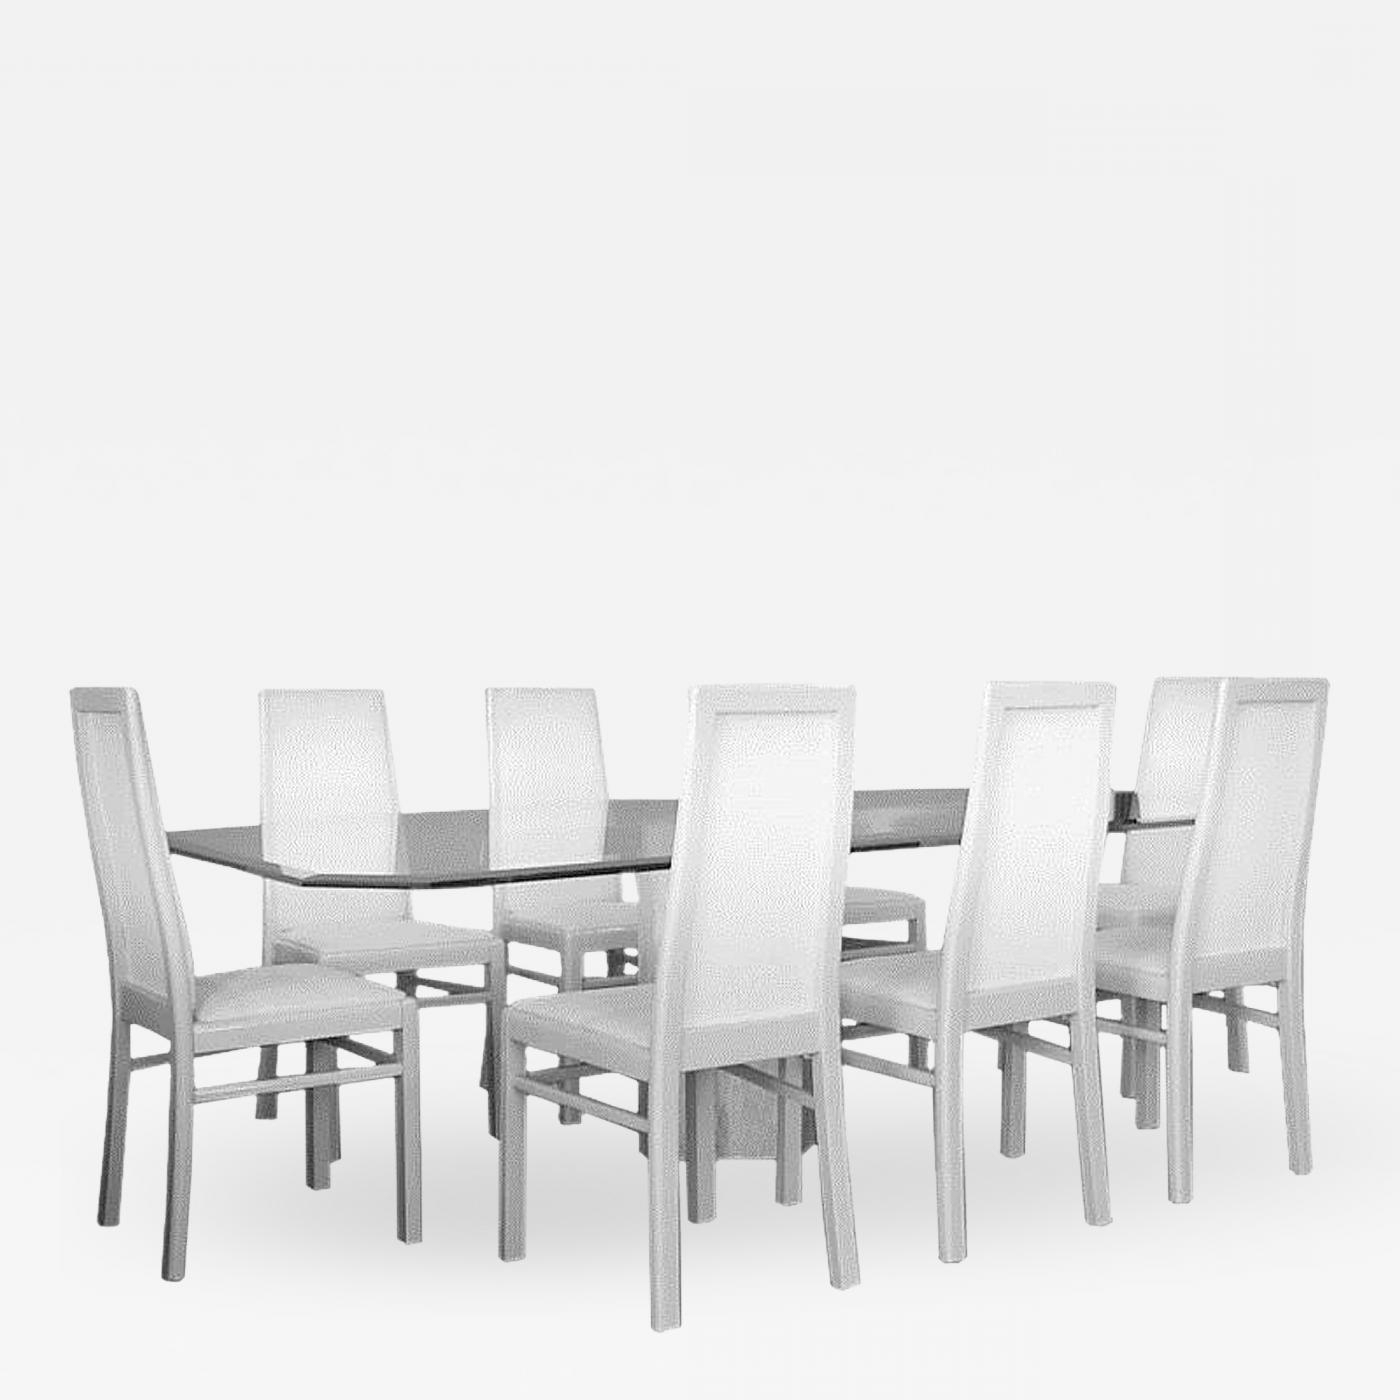 Dining Tables For Eight Pertaining To Most Recent American Travertine Base Dining Table And Eight Chairs (View 8 of 25)